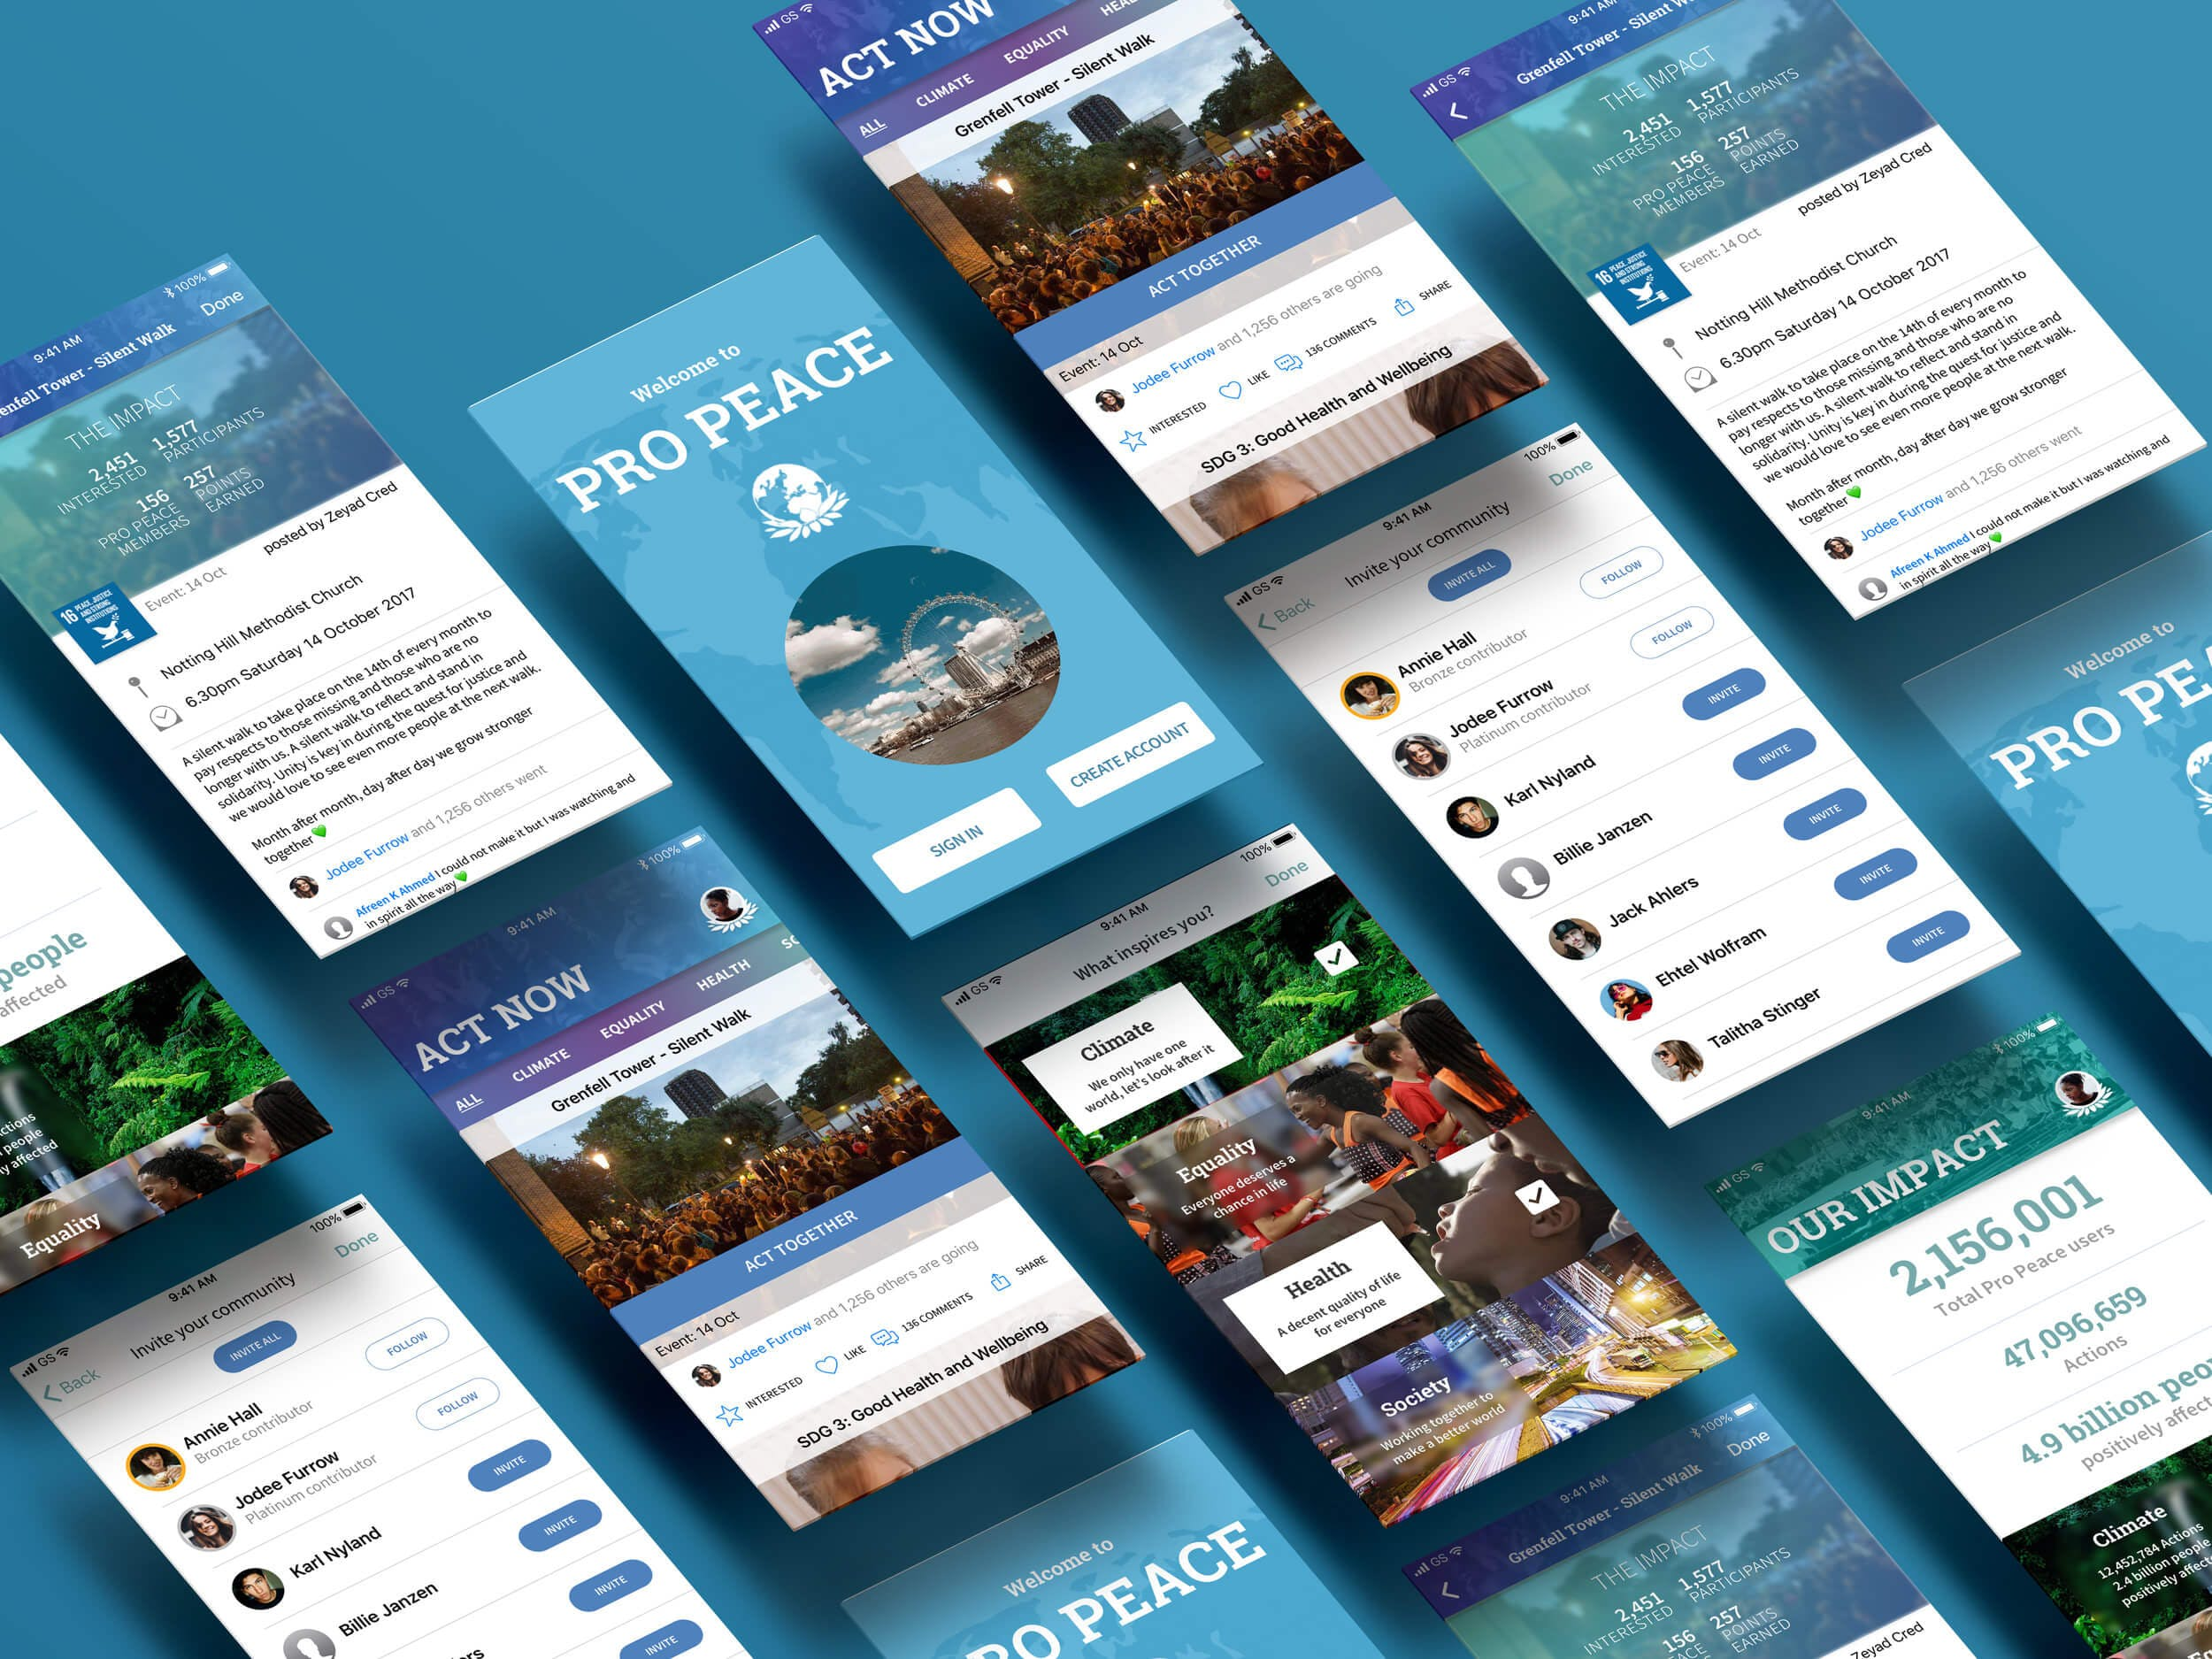 peace one day wireframe app